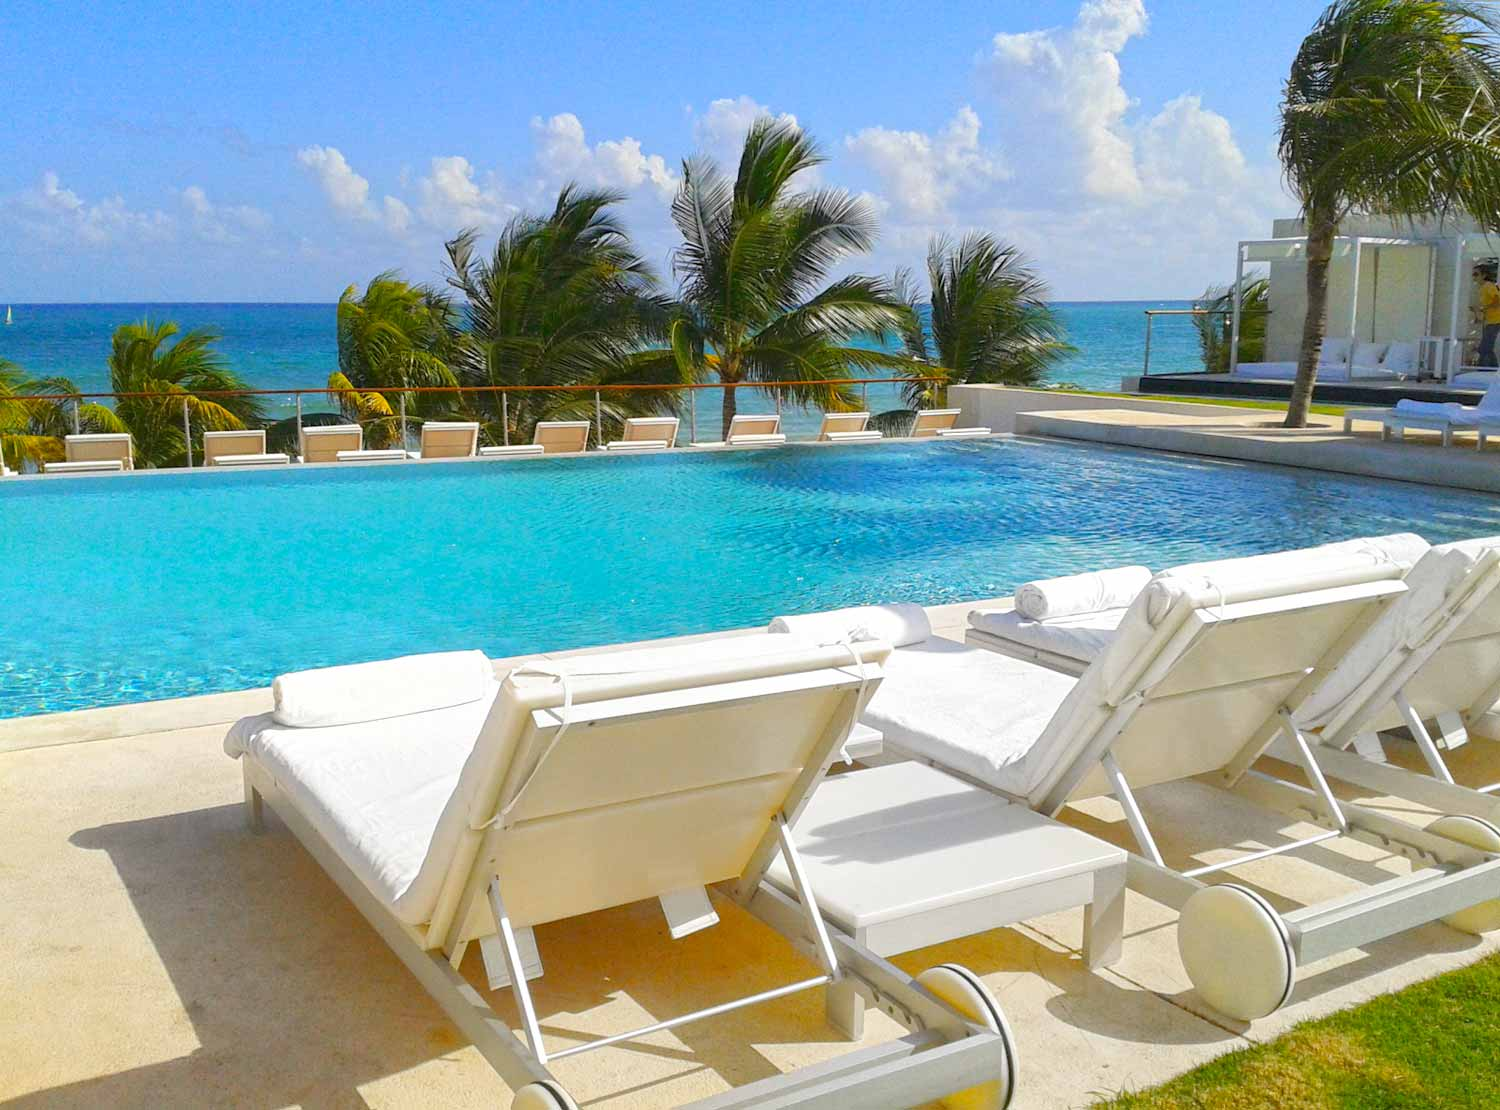 Loungers in Pool